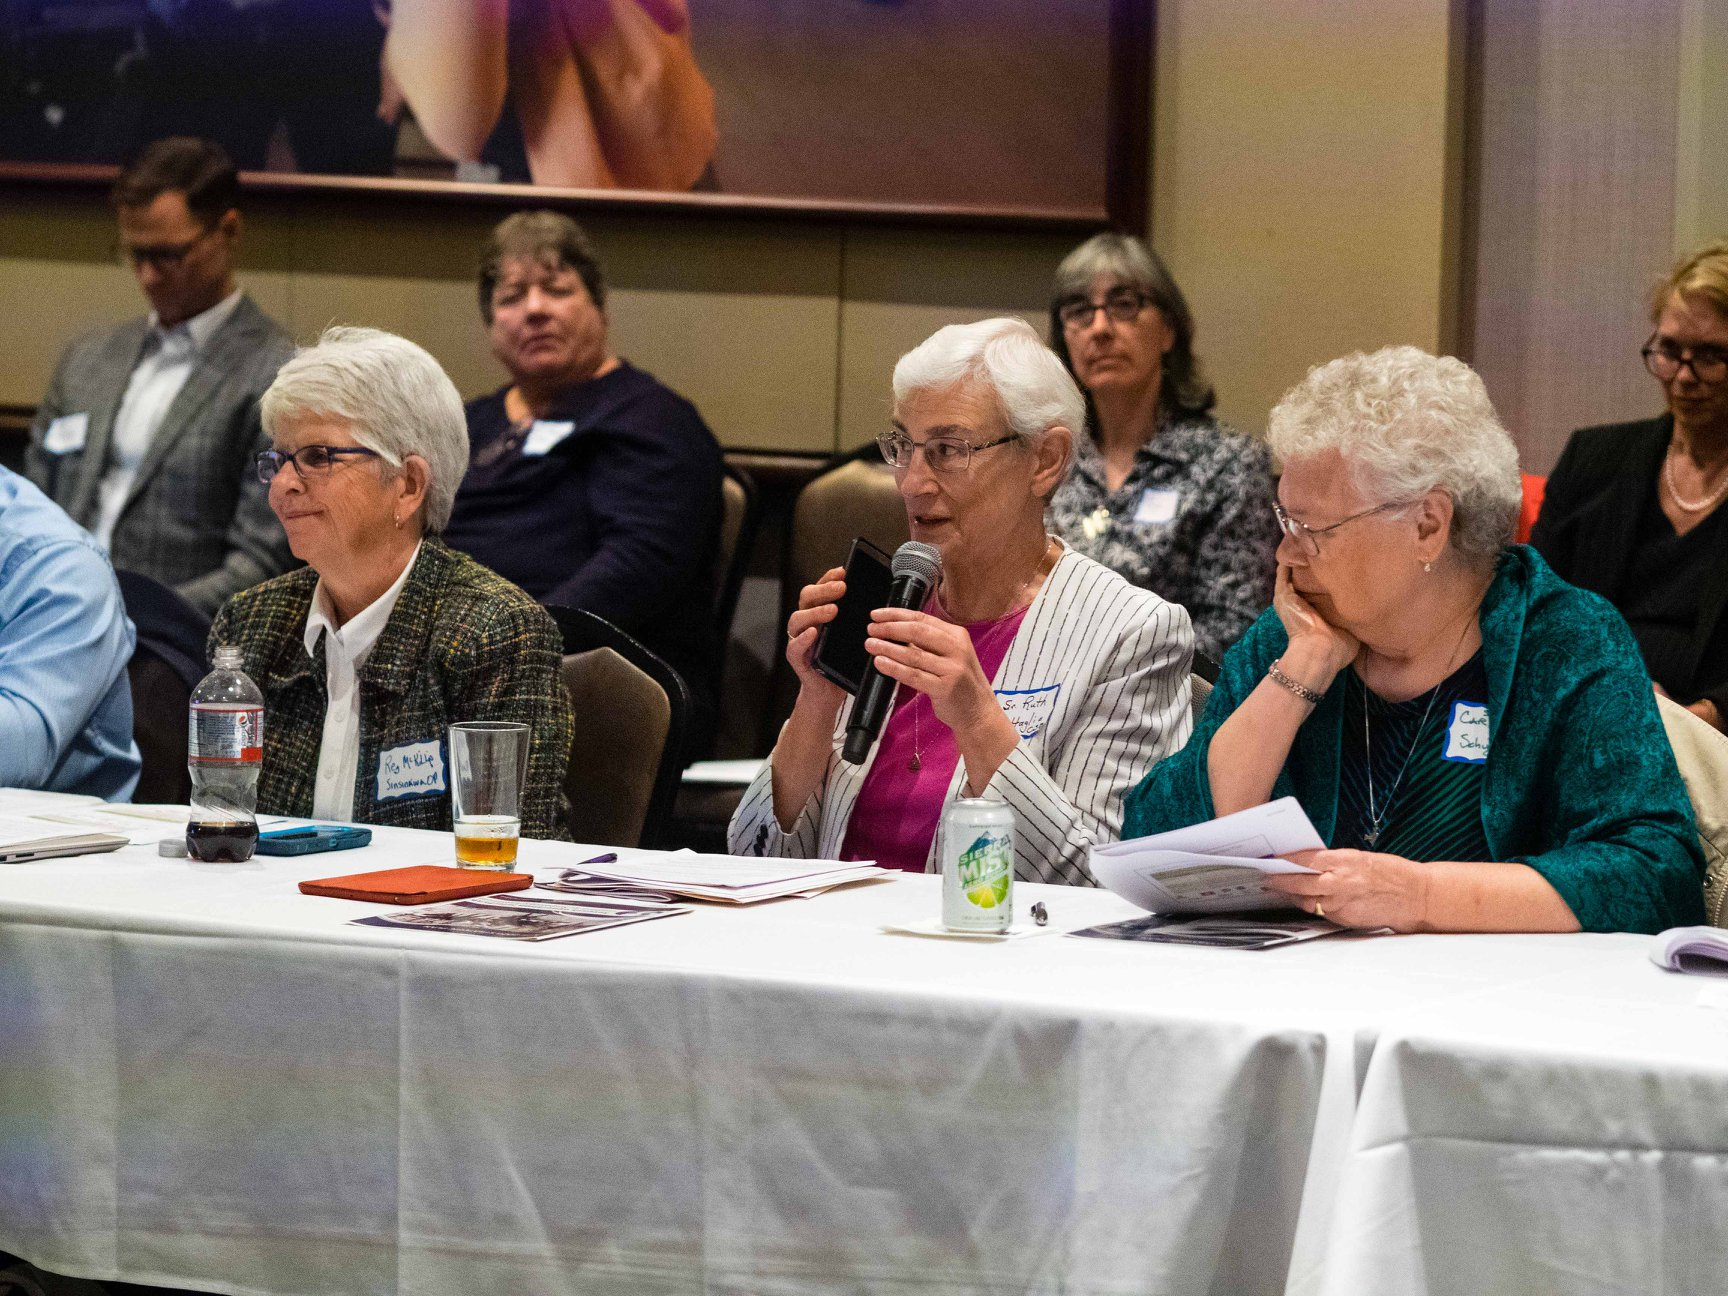 Sister Ruth comments during SGI Conference